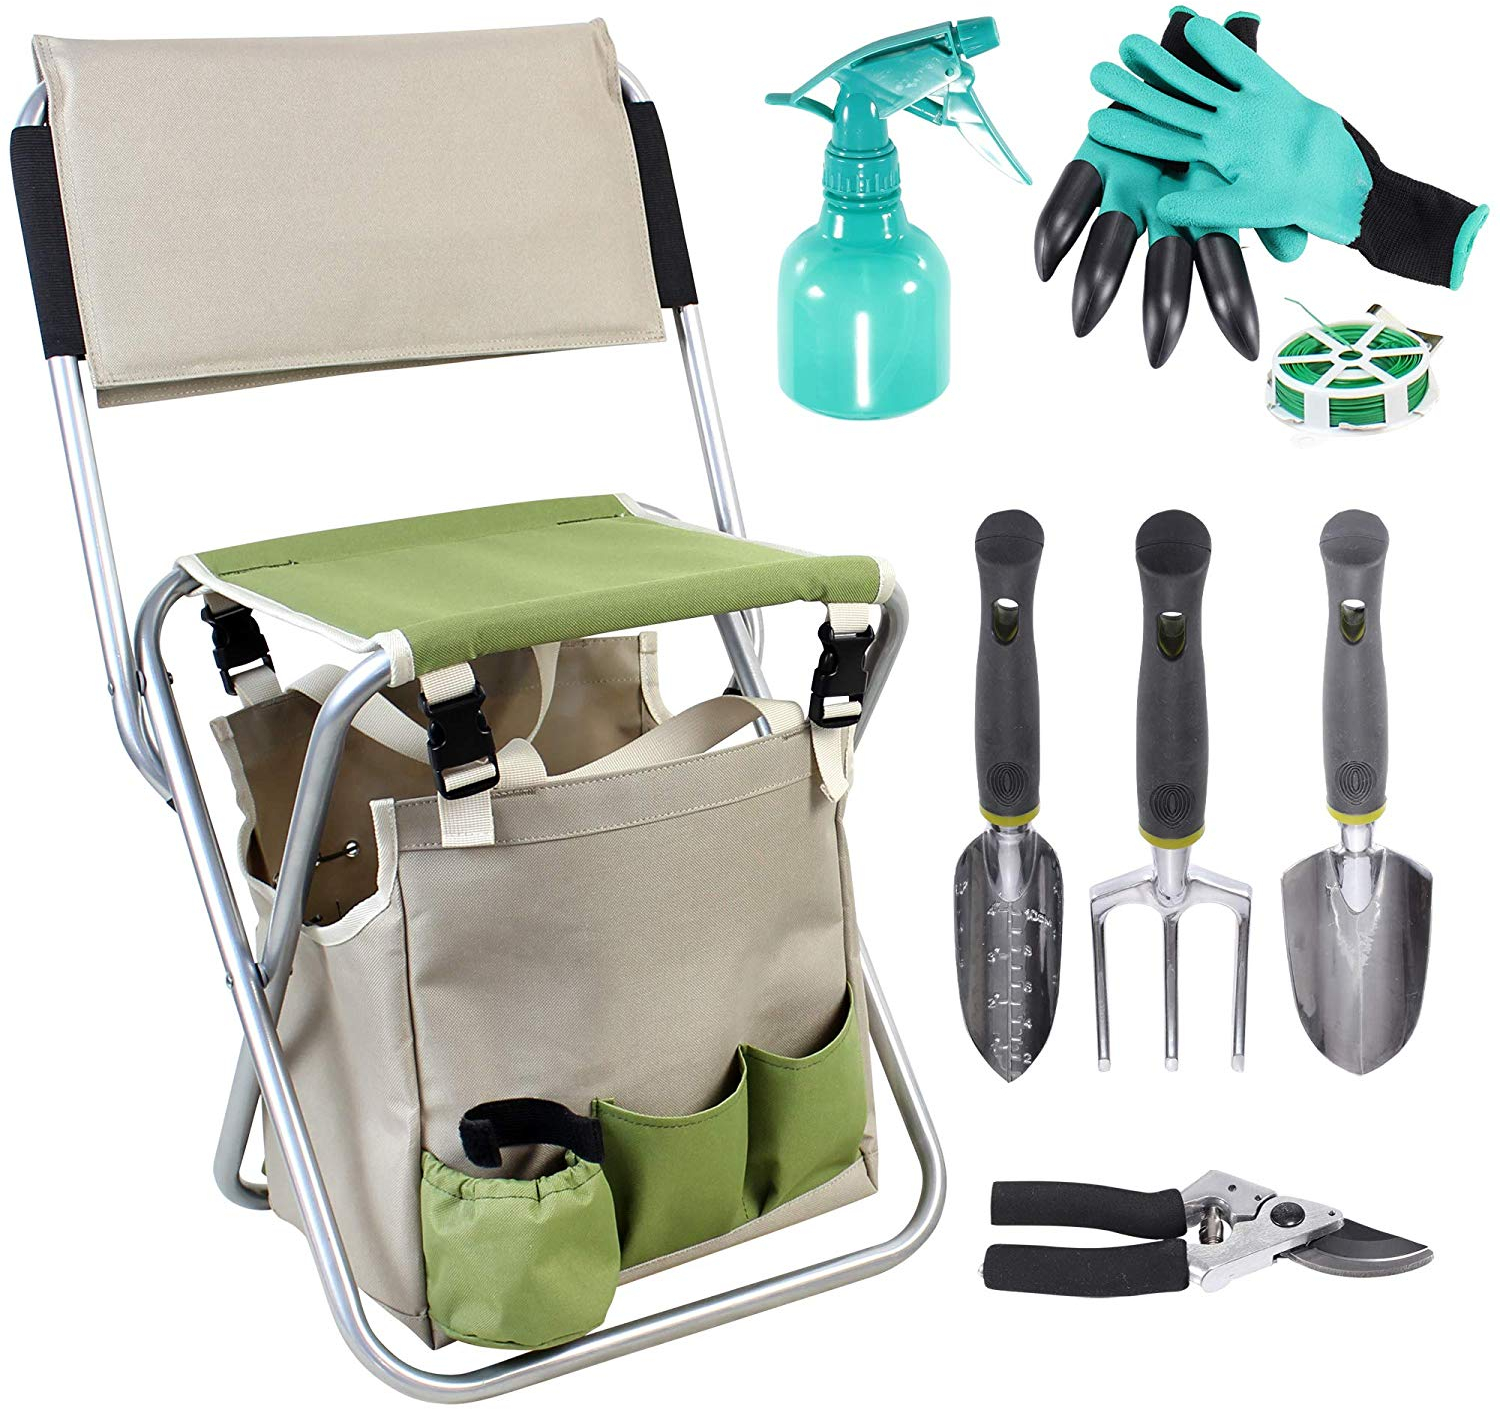 Incredible Details About 10 Piece Garden Tools Set Gardening Hand Tools Kit Detachable Storage Tote Bag Ibusinesslaw Wood Chair Design Ideas Ibusinesslaworg